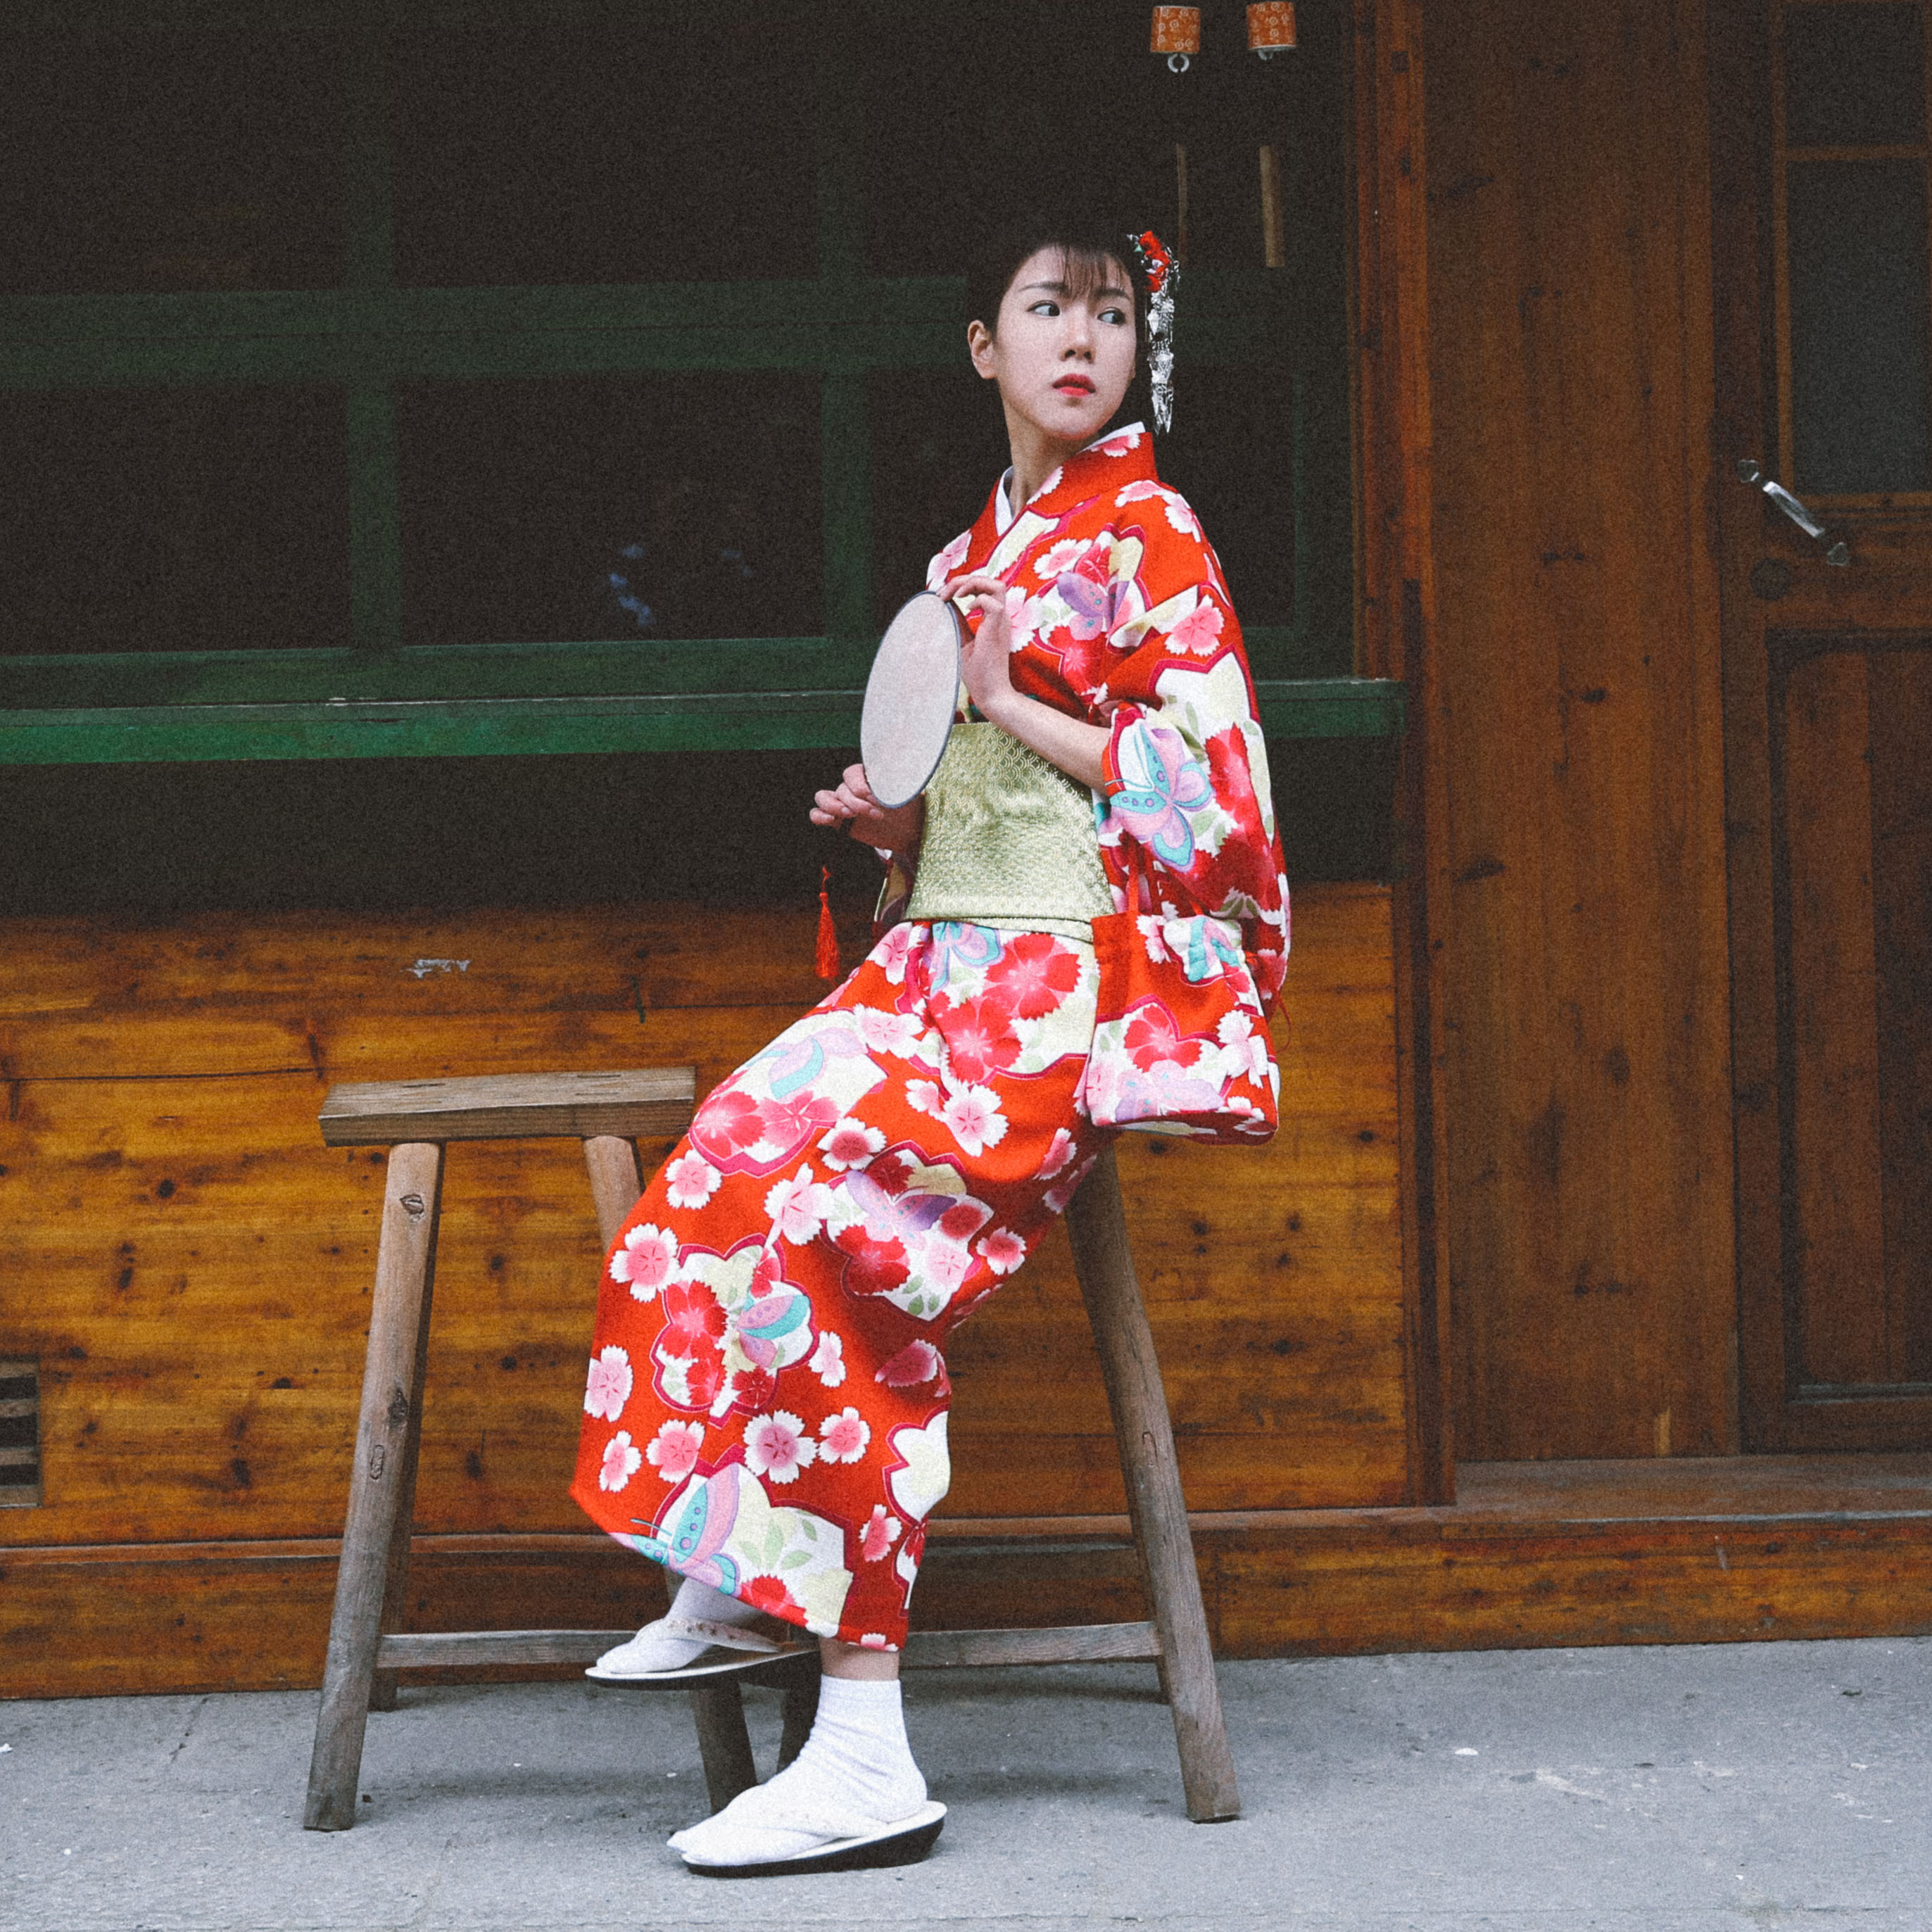 Red Printed Japanese Female Kimono Lounge Yukata Vintage Girl Dress Gown Elegant Dance Performance Clothes Cosplay Costume